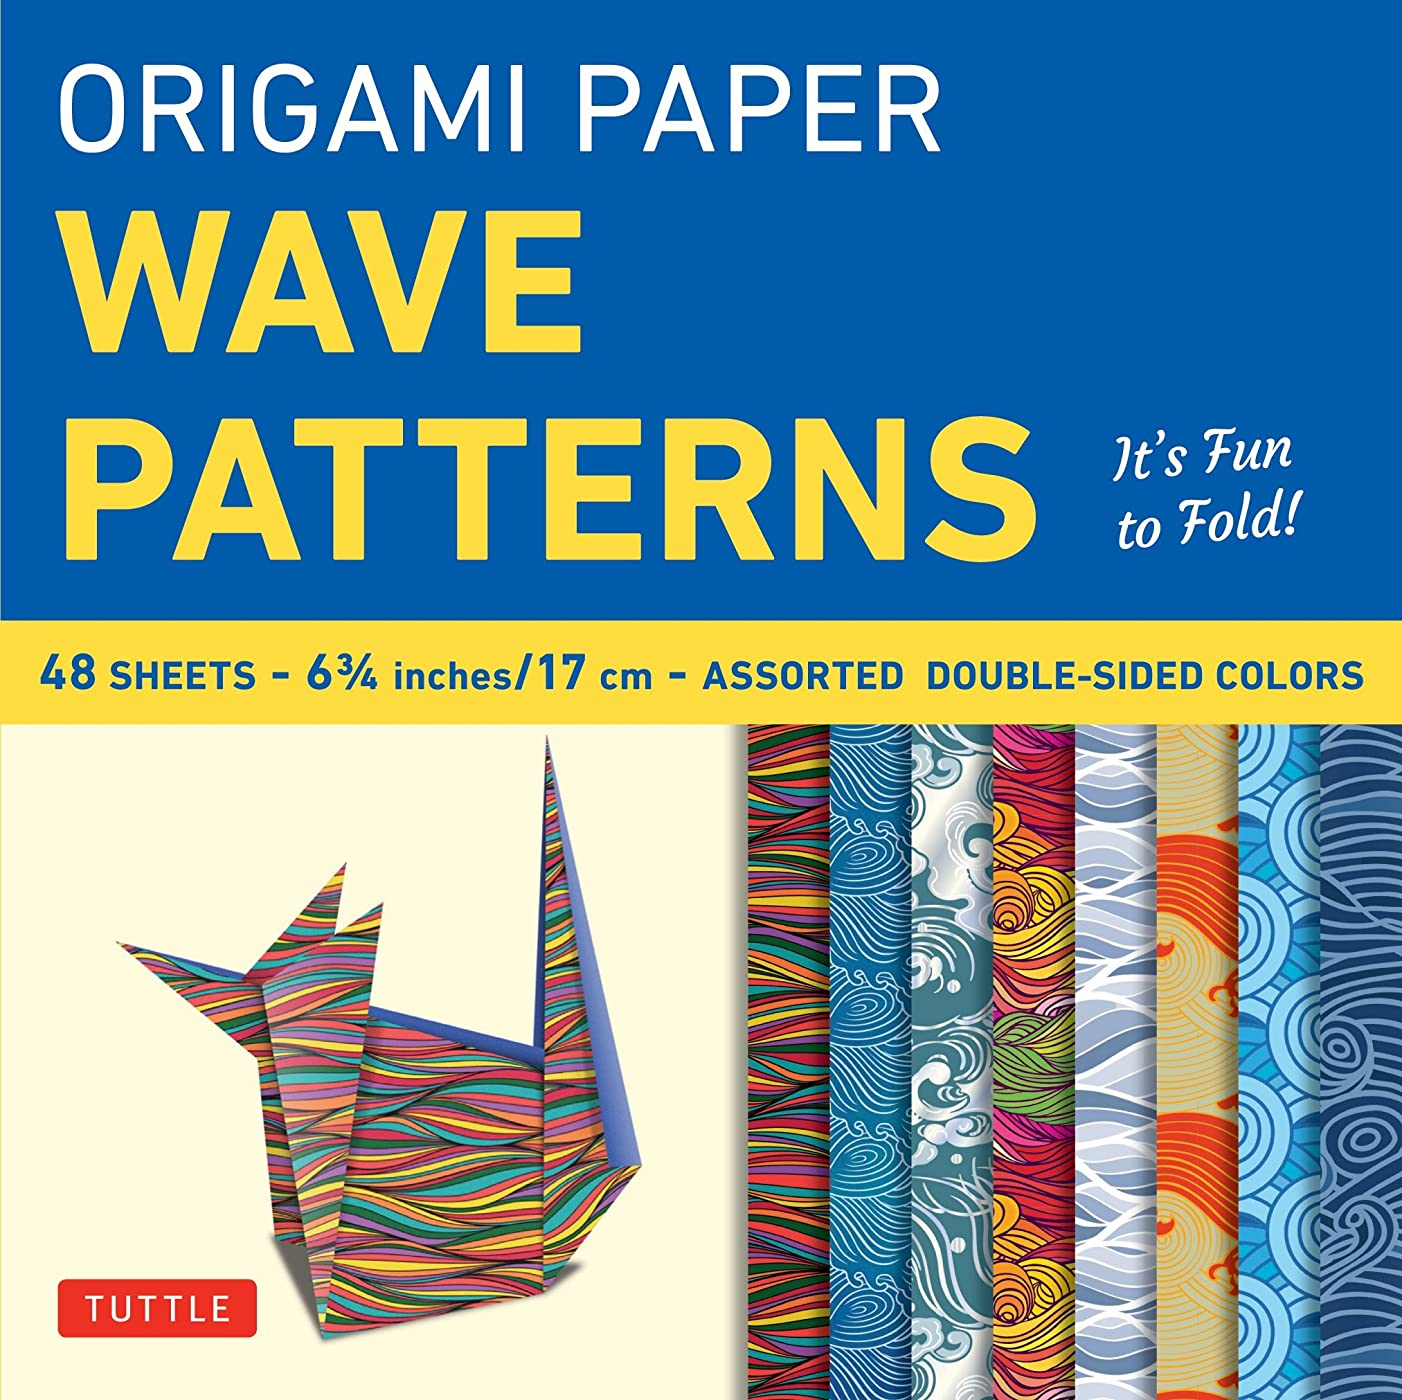 Origami Paper - Wave Patterns - 6 3/4 inch - 48 Sheets: Tuttle Origami Paper: High-Quality Origami Sheets Printed with 8 Different Designs: Instructions for 8 Projects Included